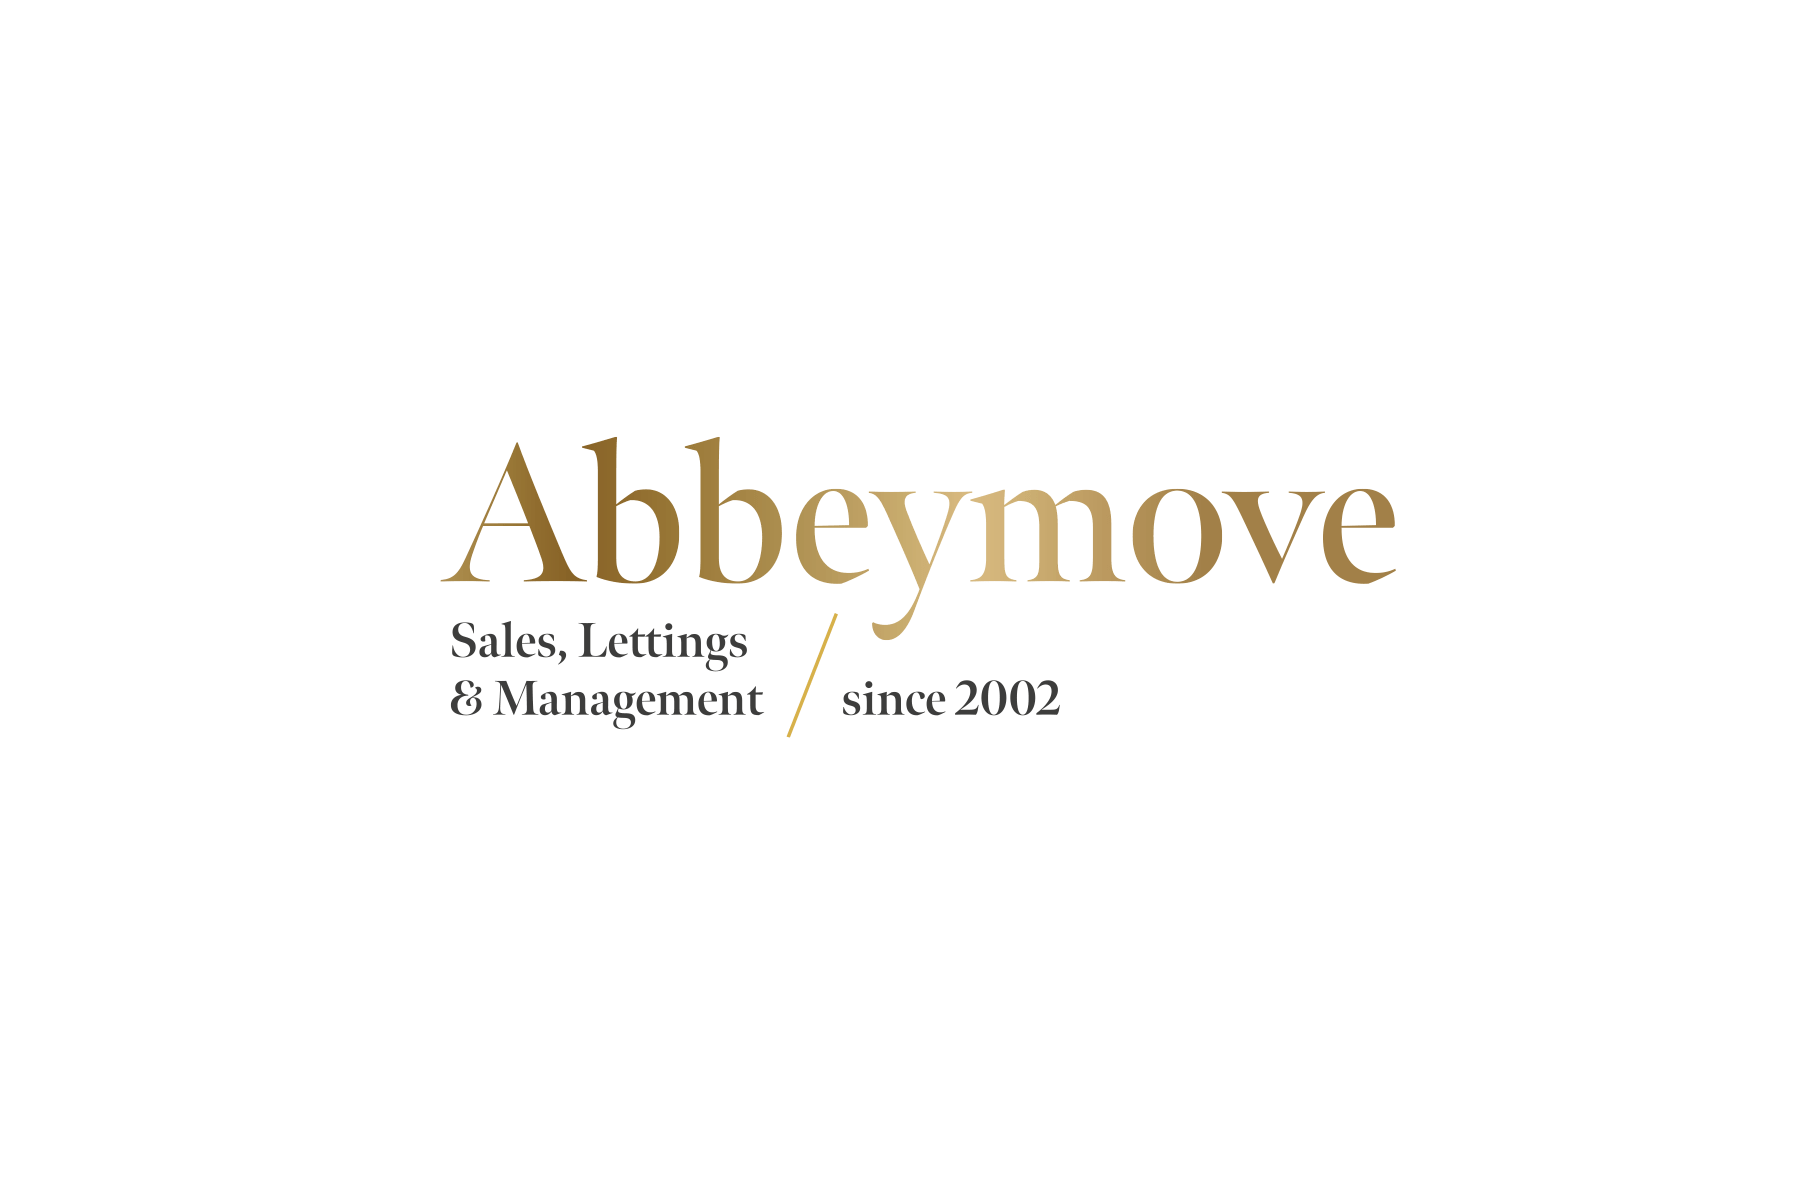 Abbeymove / Crafting a brand with City professionals in mind